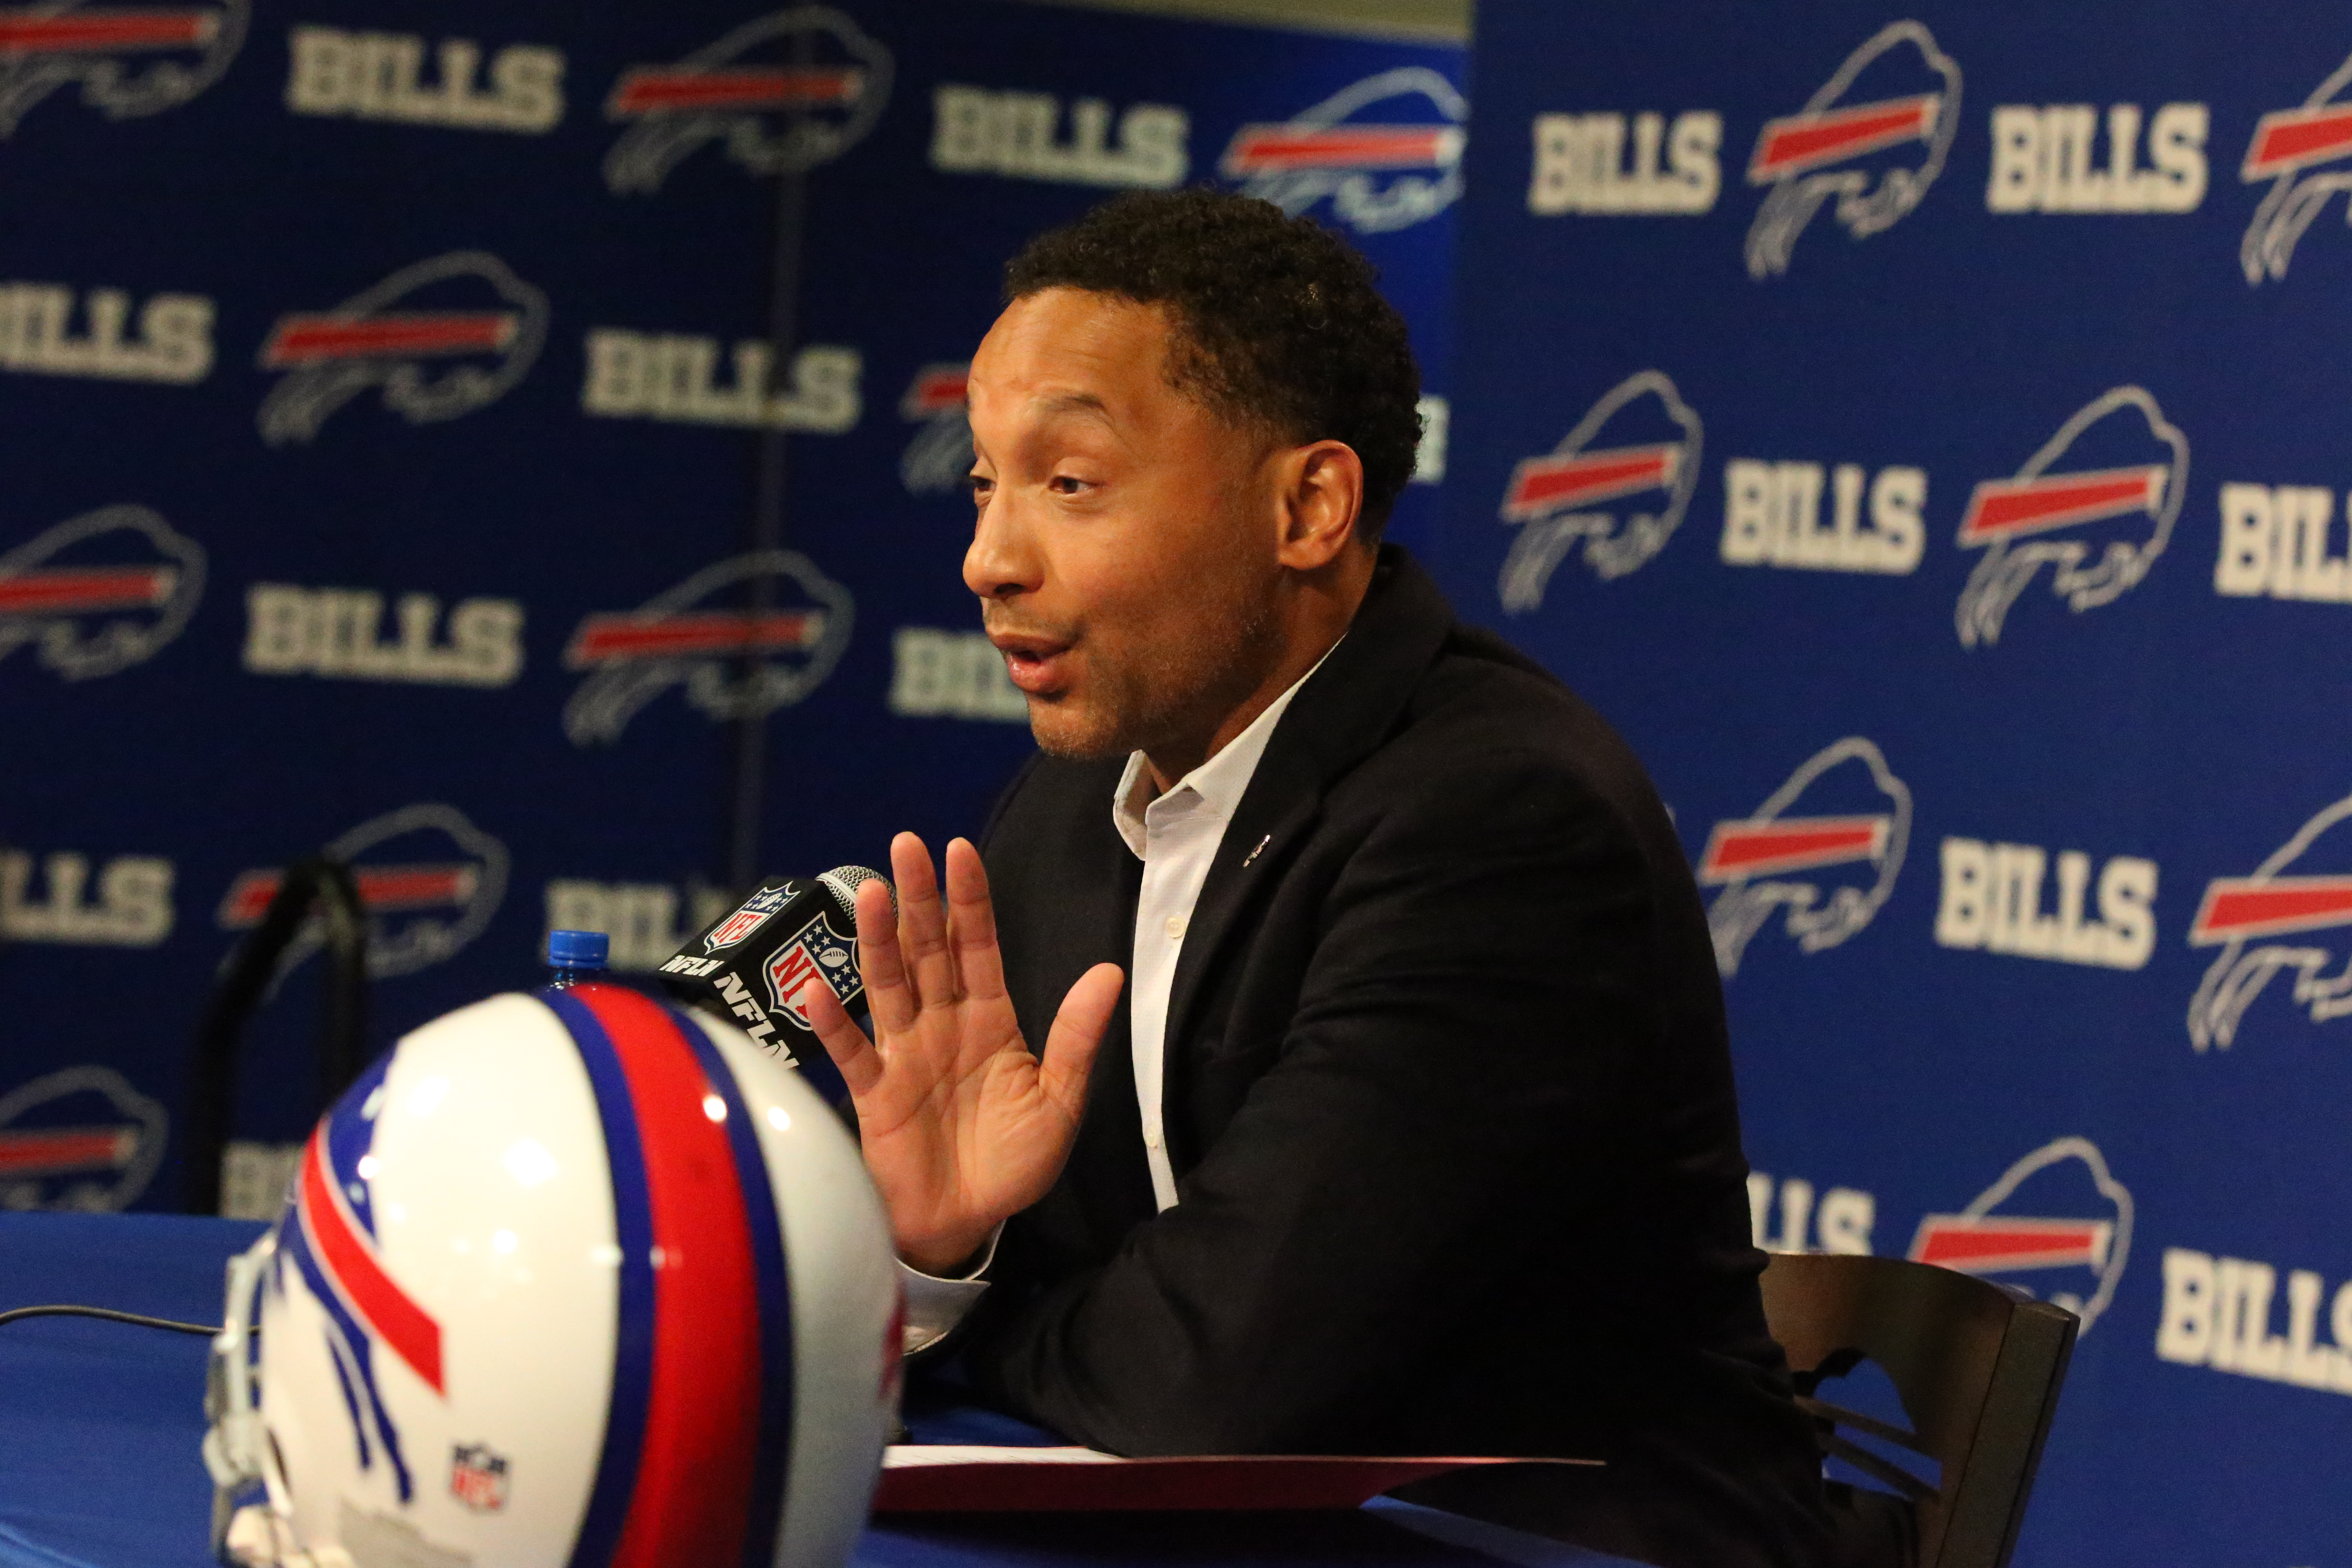 Buffalo Bills General Manager Doug Whaley responds to a question Monday. (James P. McCoy/Buffalo News)